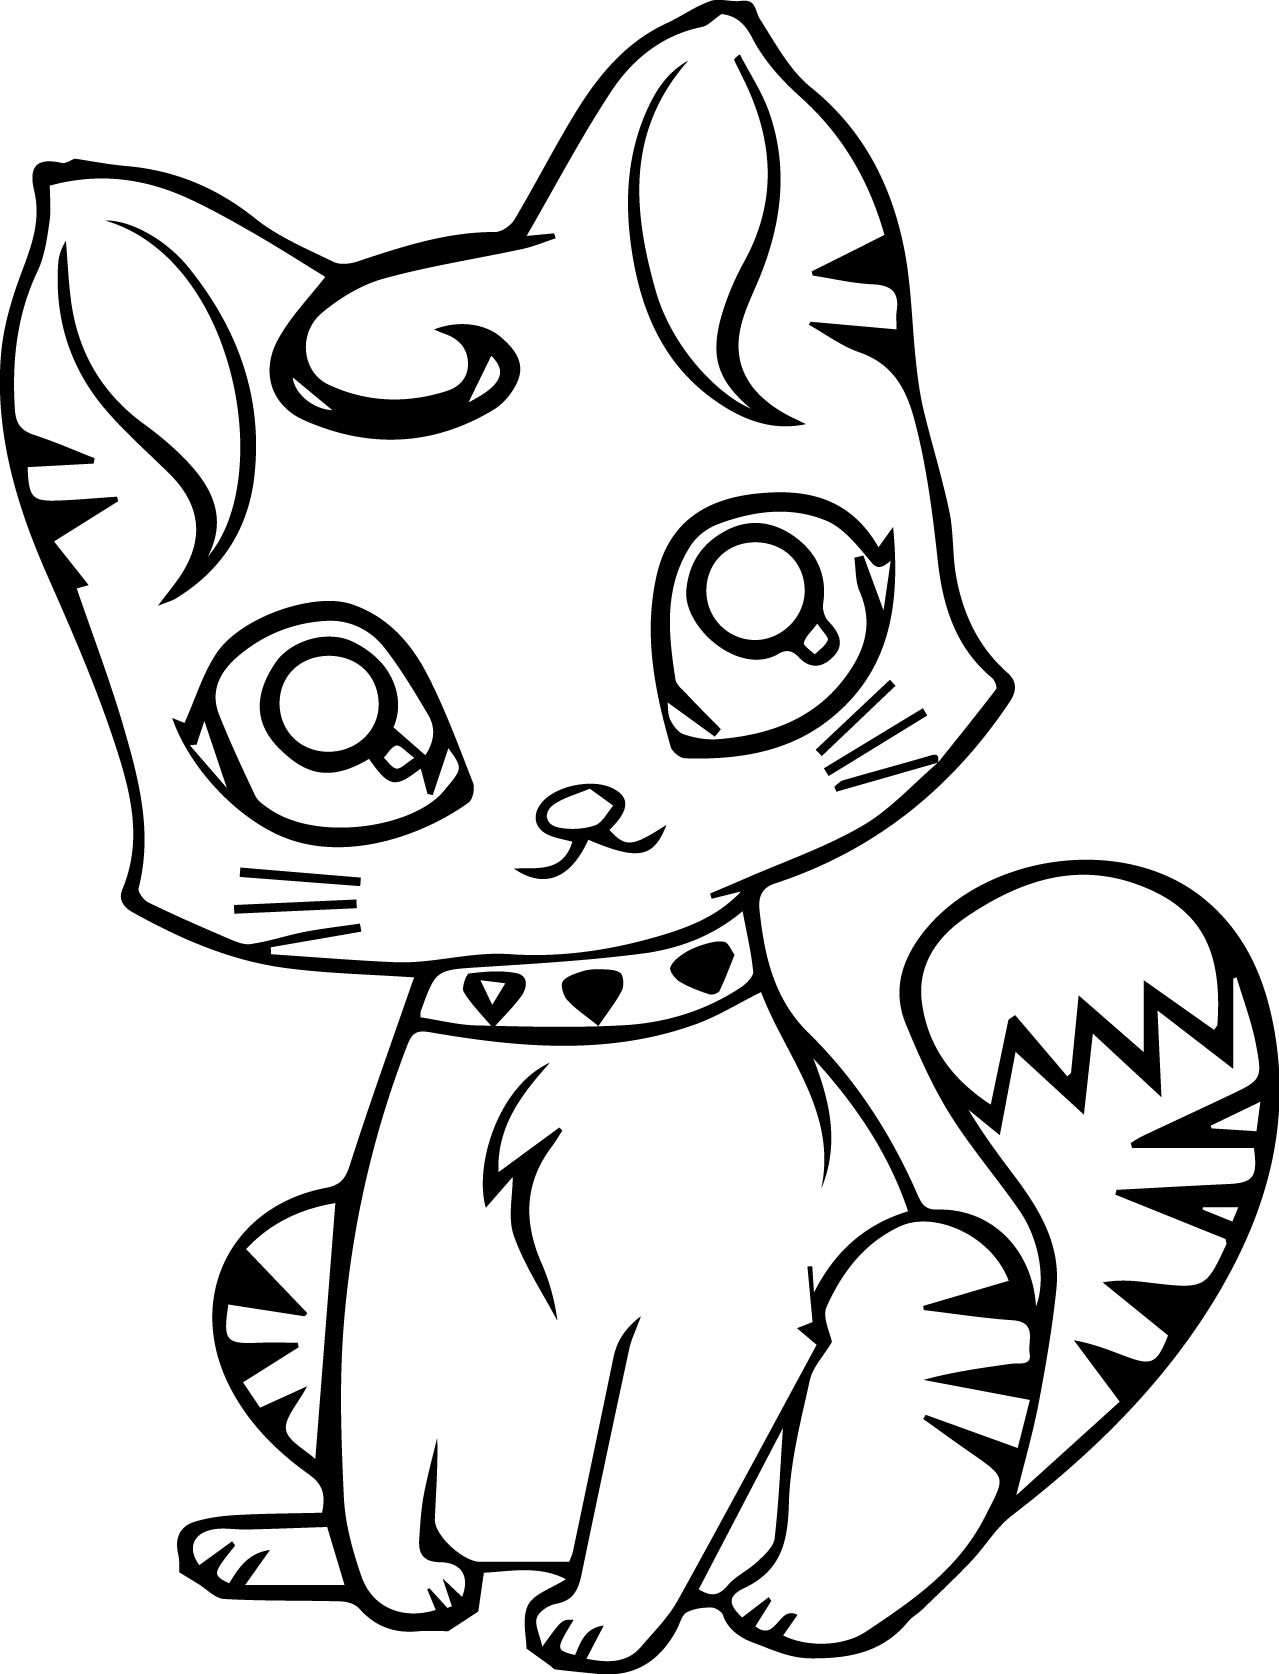 1279x1674 Cute Cat Coloring Pages Cats Wallpapers Lobaedesign Com